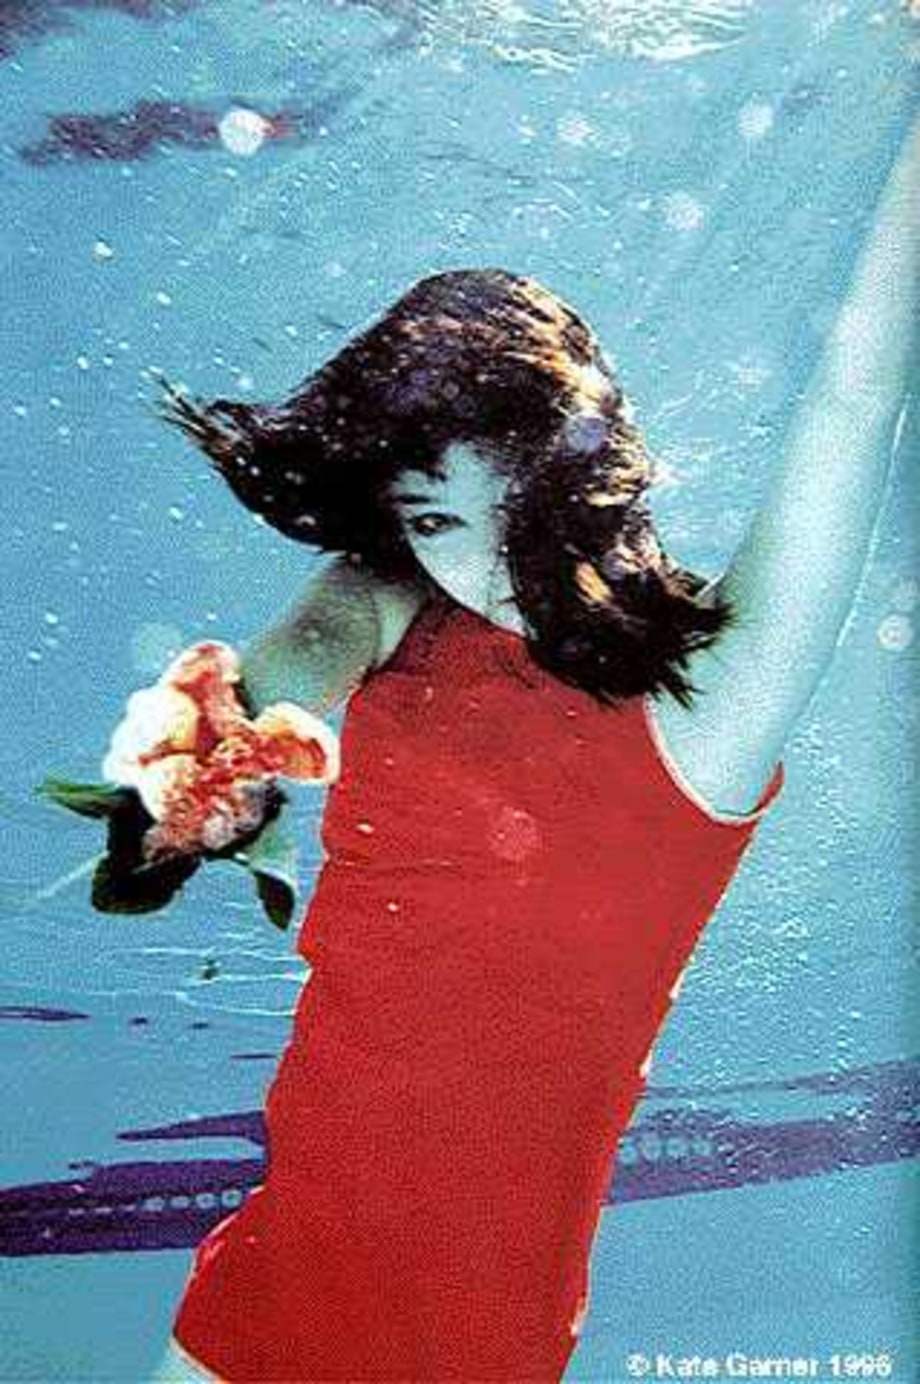 Bjork goes down under water